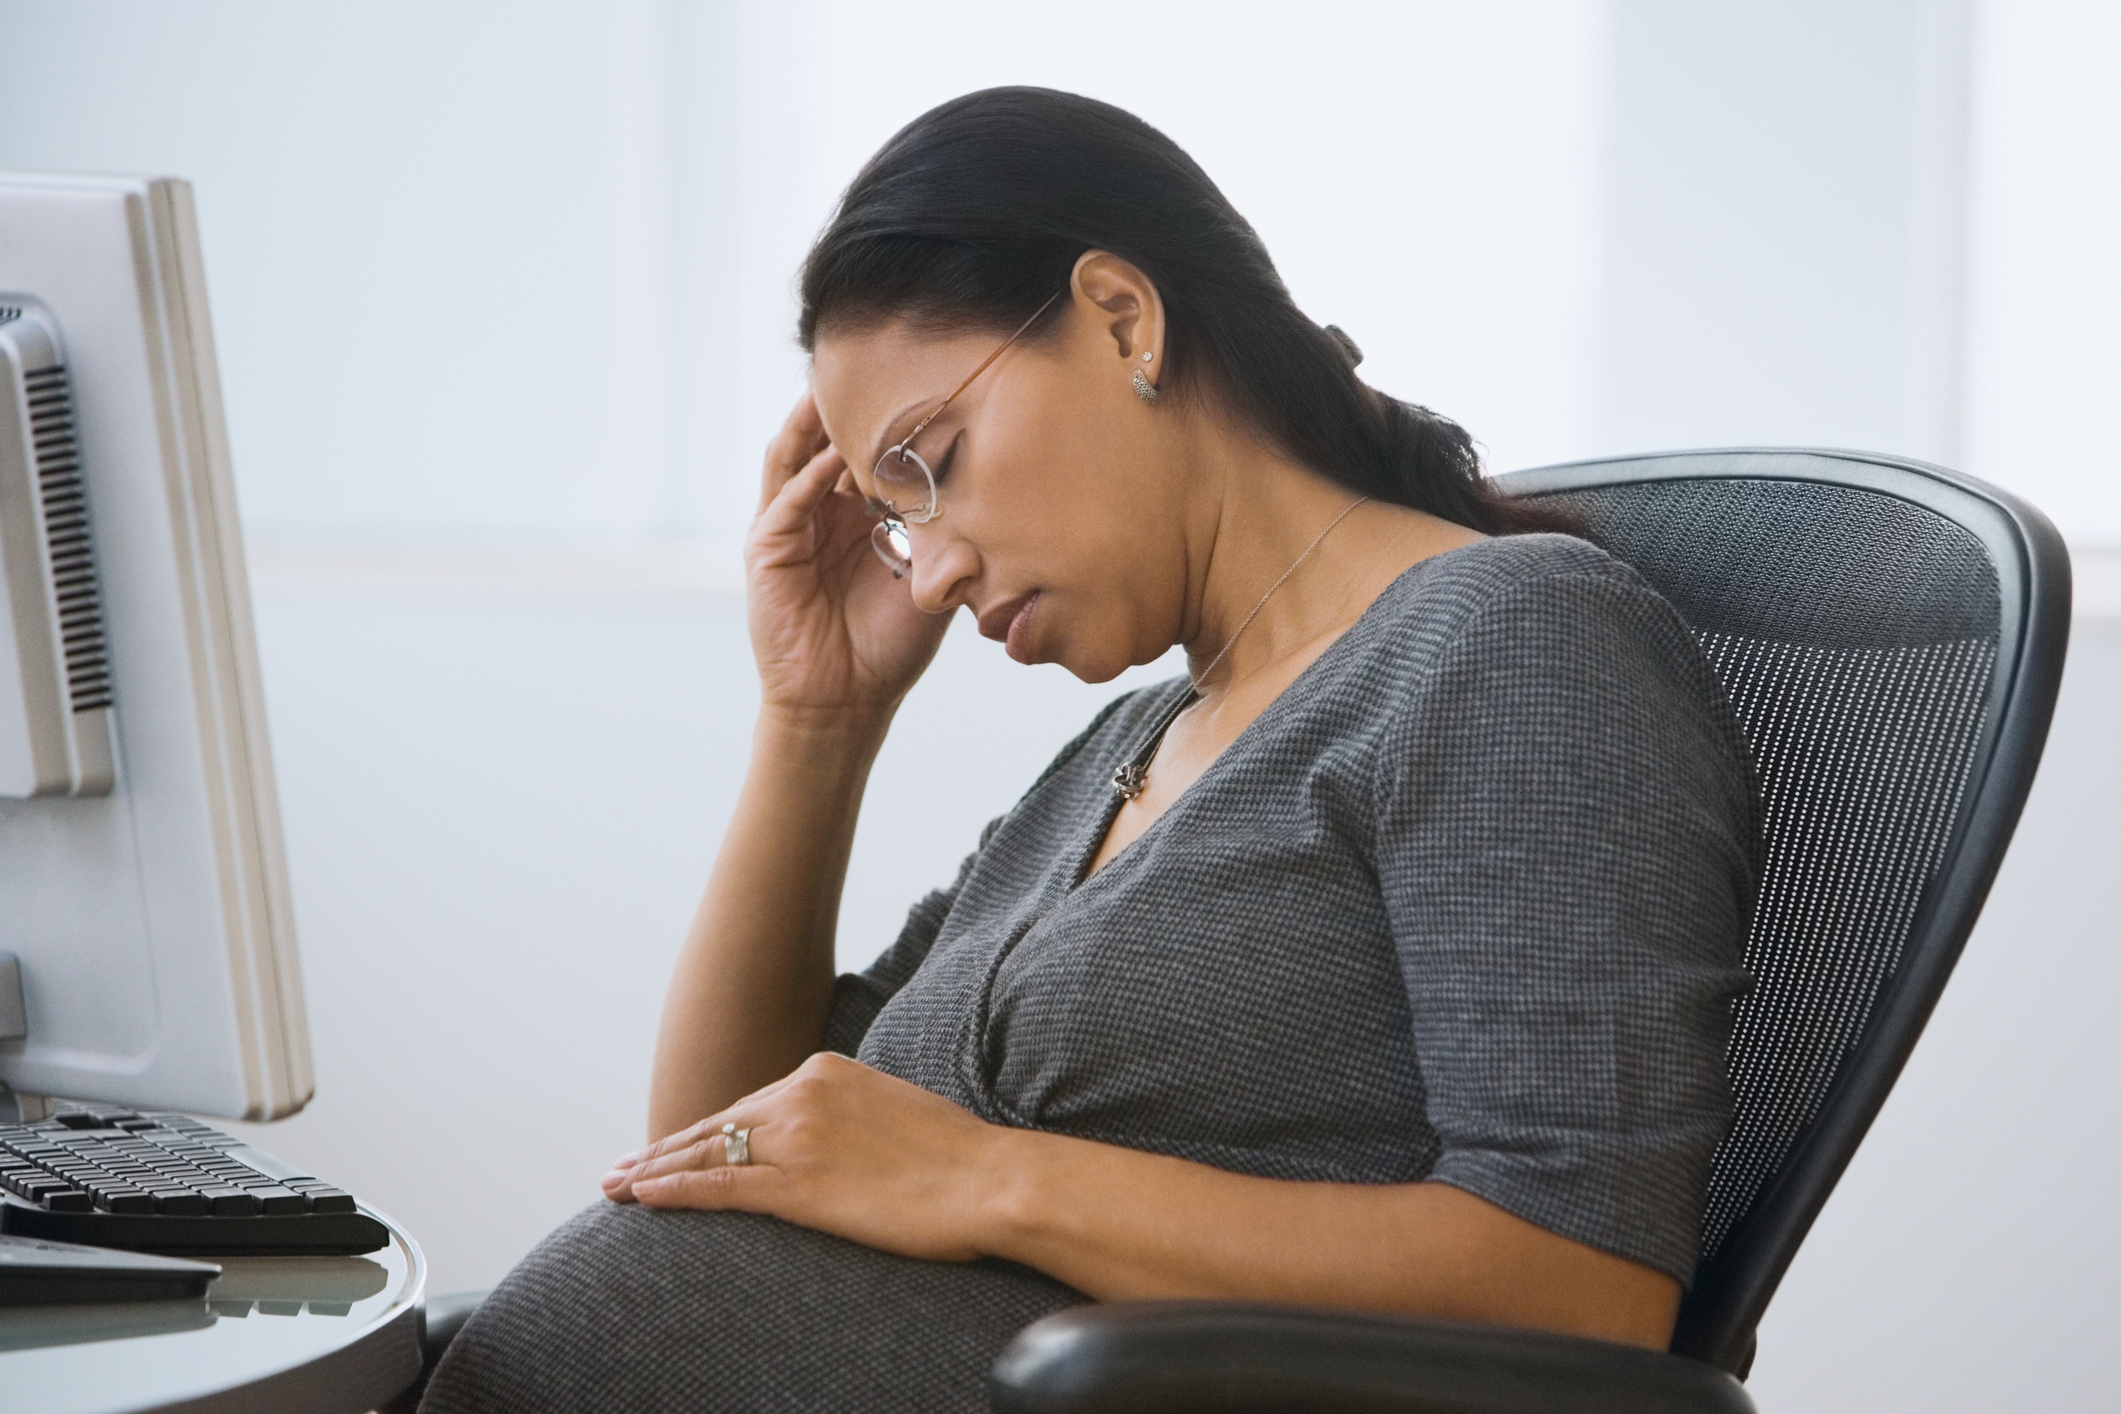 WHY WOMEN SHOULD AVOID BEING STRESSED DURING PREGNANCY